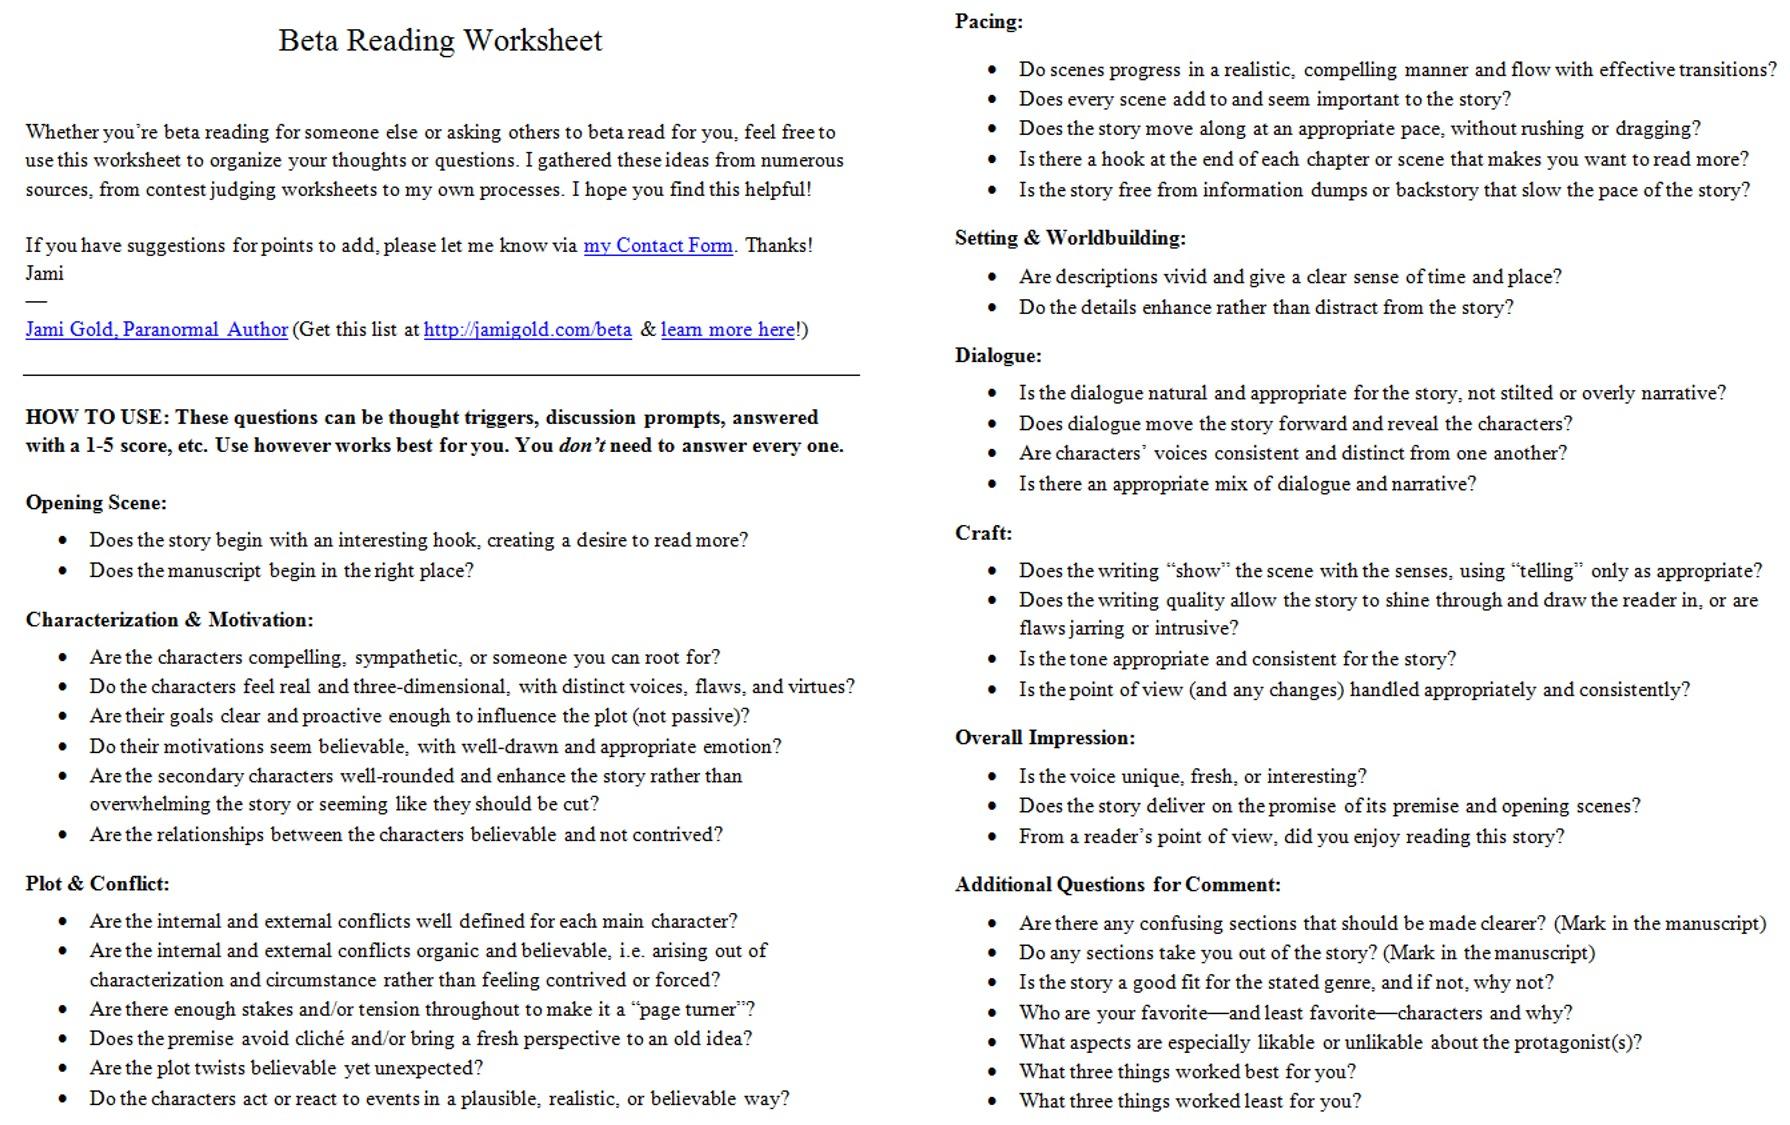 Weirdmailus  Personable Worksheets For Writers  Jami Gold Paranormal Author With Engaging Screen Shot Of The Twopage Beta Reading Worksheet With Astounding Verifying Trig Identities Worksheet Also Chemical Equation Worksheet In Addition Easy Addition Worksheets And Black History Worksheets As Well As Ph Practice Worksheet Additionally Pronouns Worksheet From Jamigoldcom With Weirdmailus  Engaging Worksheets For Writers  Jami Gold Paranormal Author With Astounding Screen Shot Of The Twopage Beta Reading Worksheet And Personable Verifying Trig Identities Worksheet Also Chemical Equation Worksheet In Addition Easy Addition Worksheets From Jamigoldcom